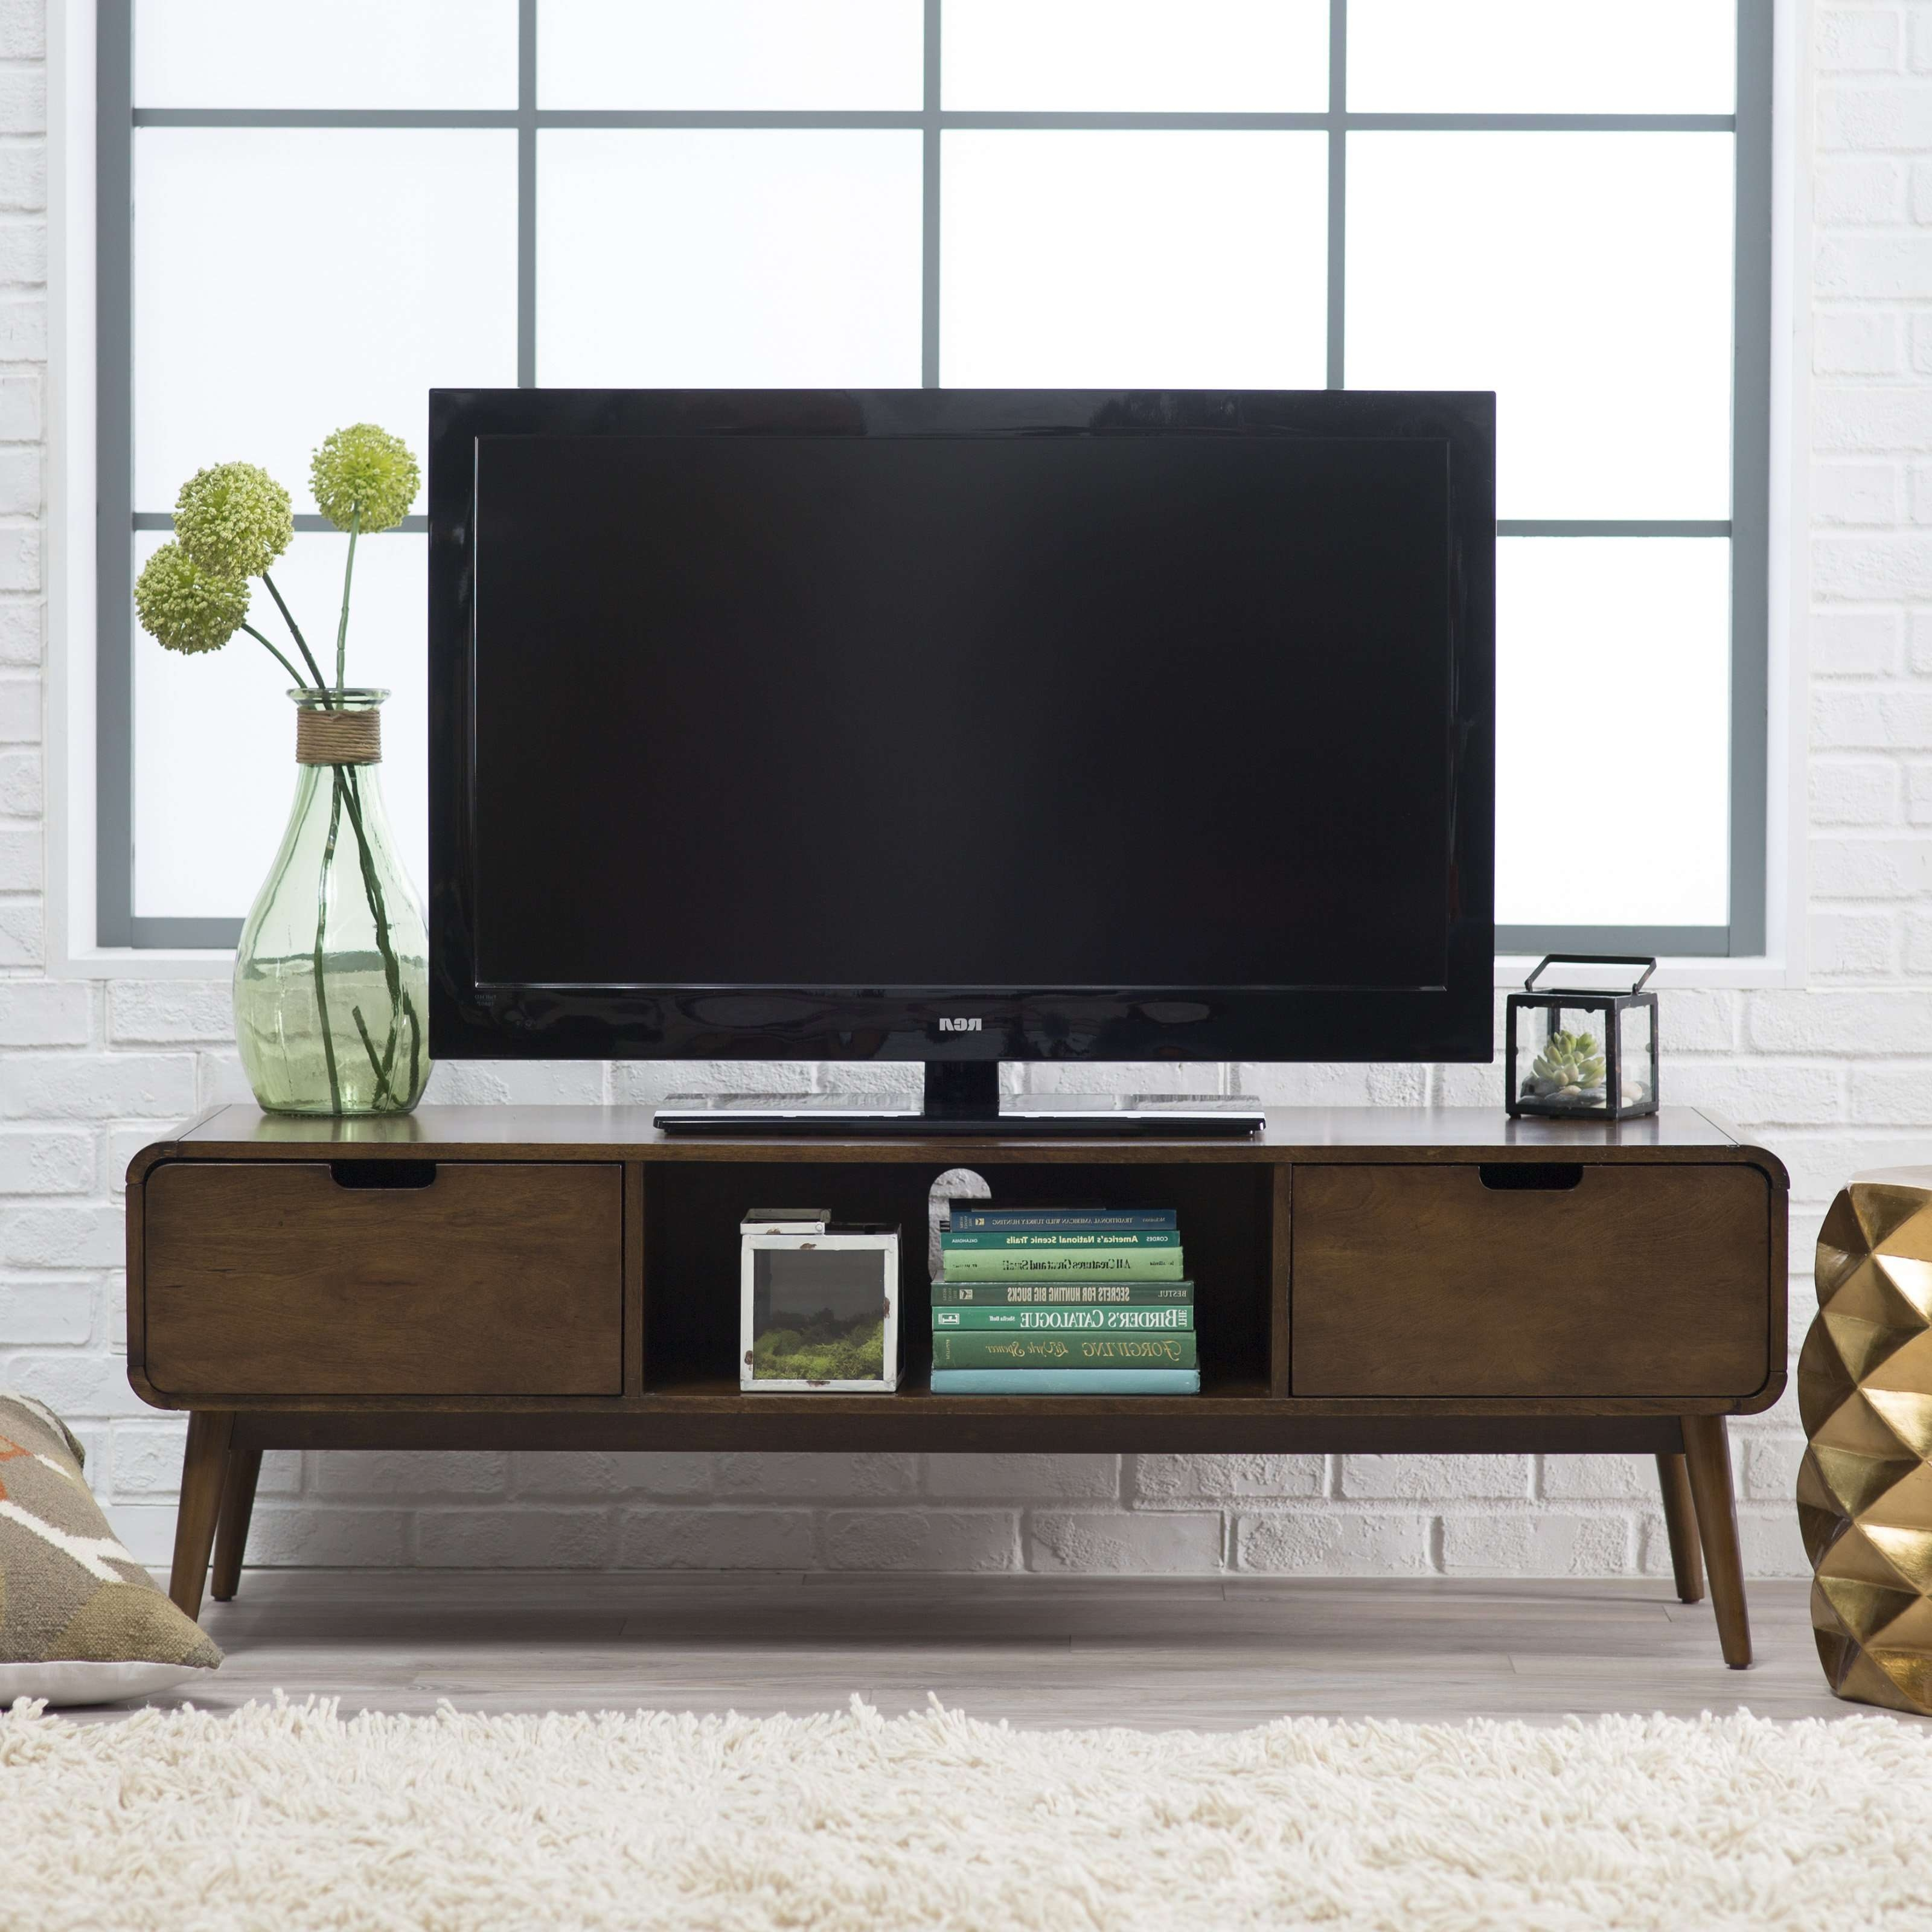 Belham Living Carter Mid Century Modern Tv Stand | Hayneedle For Modern Low Profile Tv Stands (View 1 of 15)